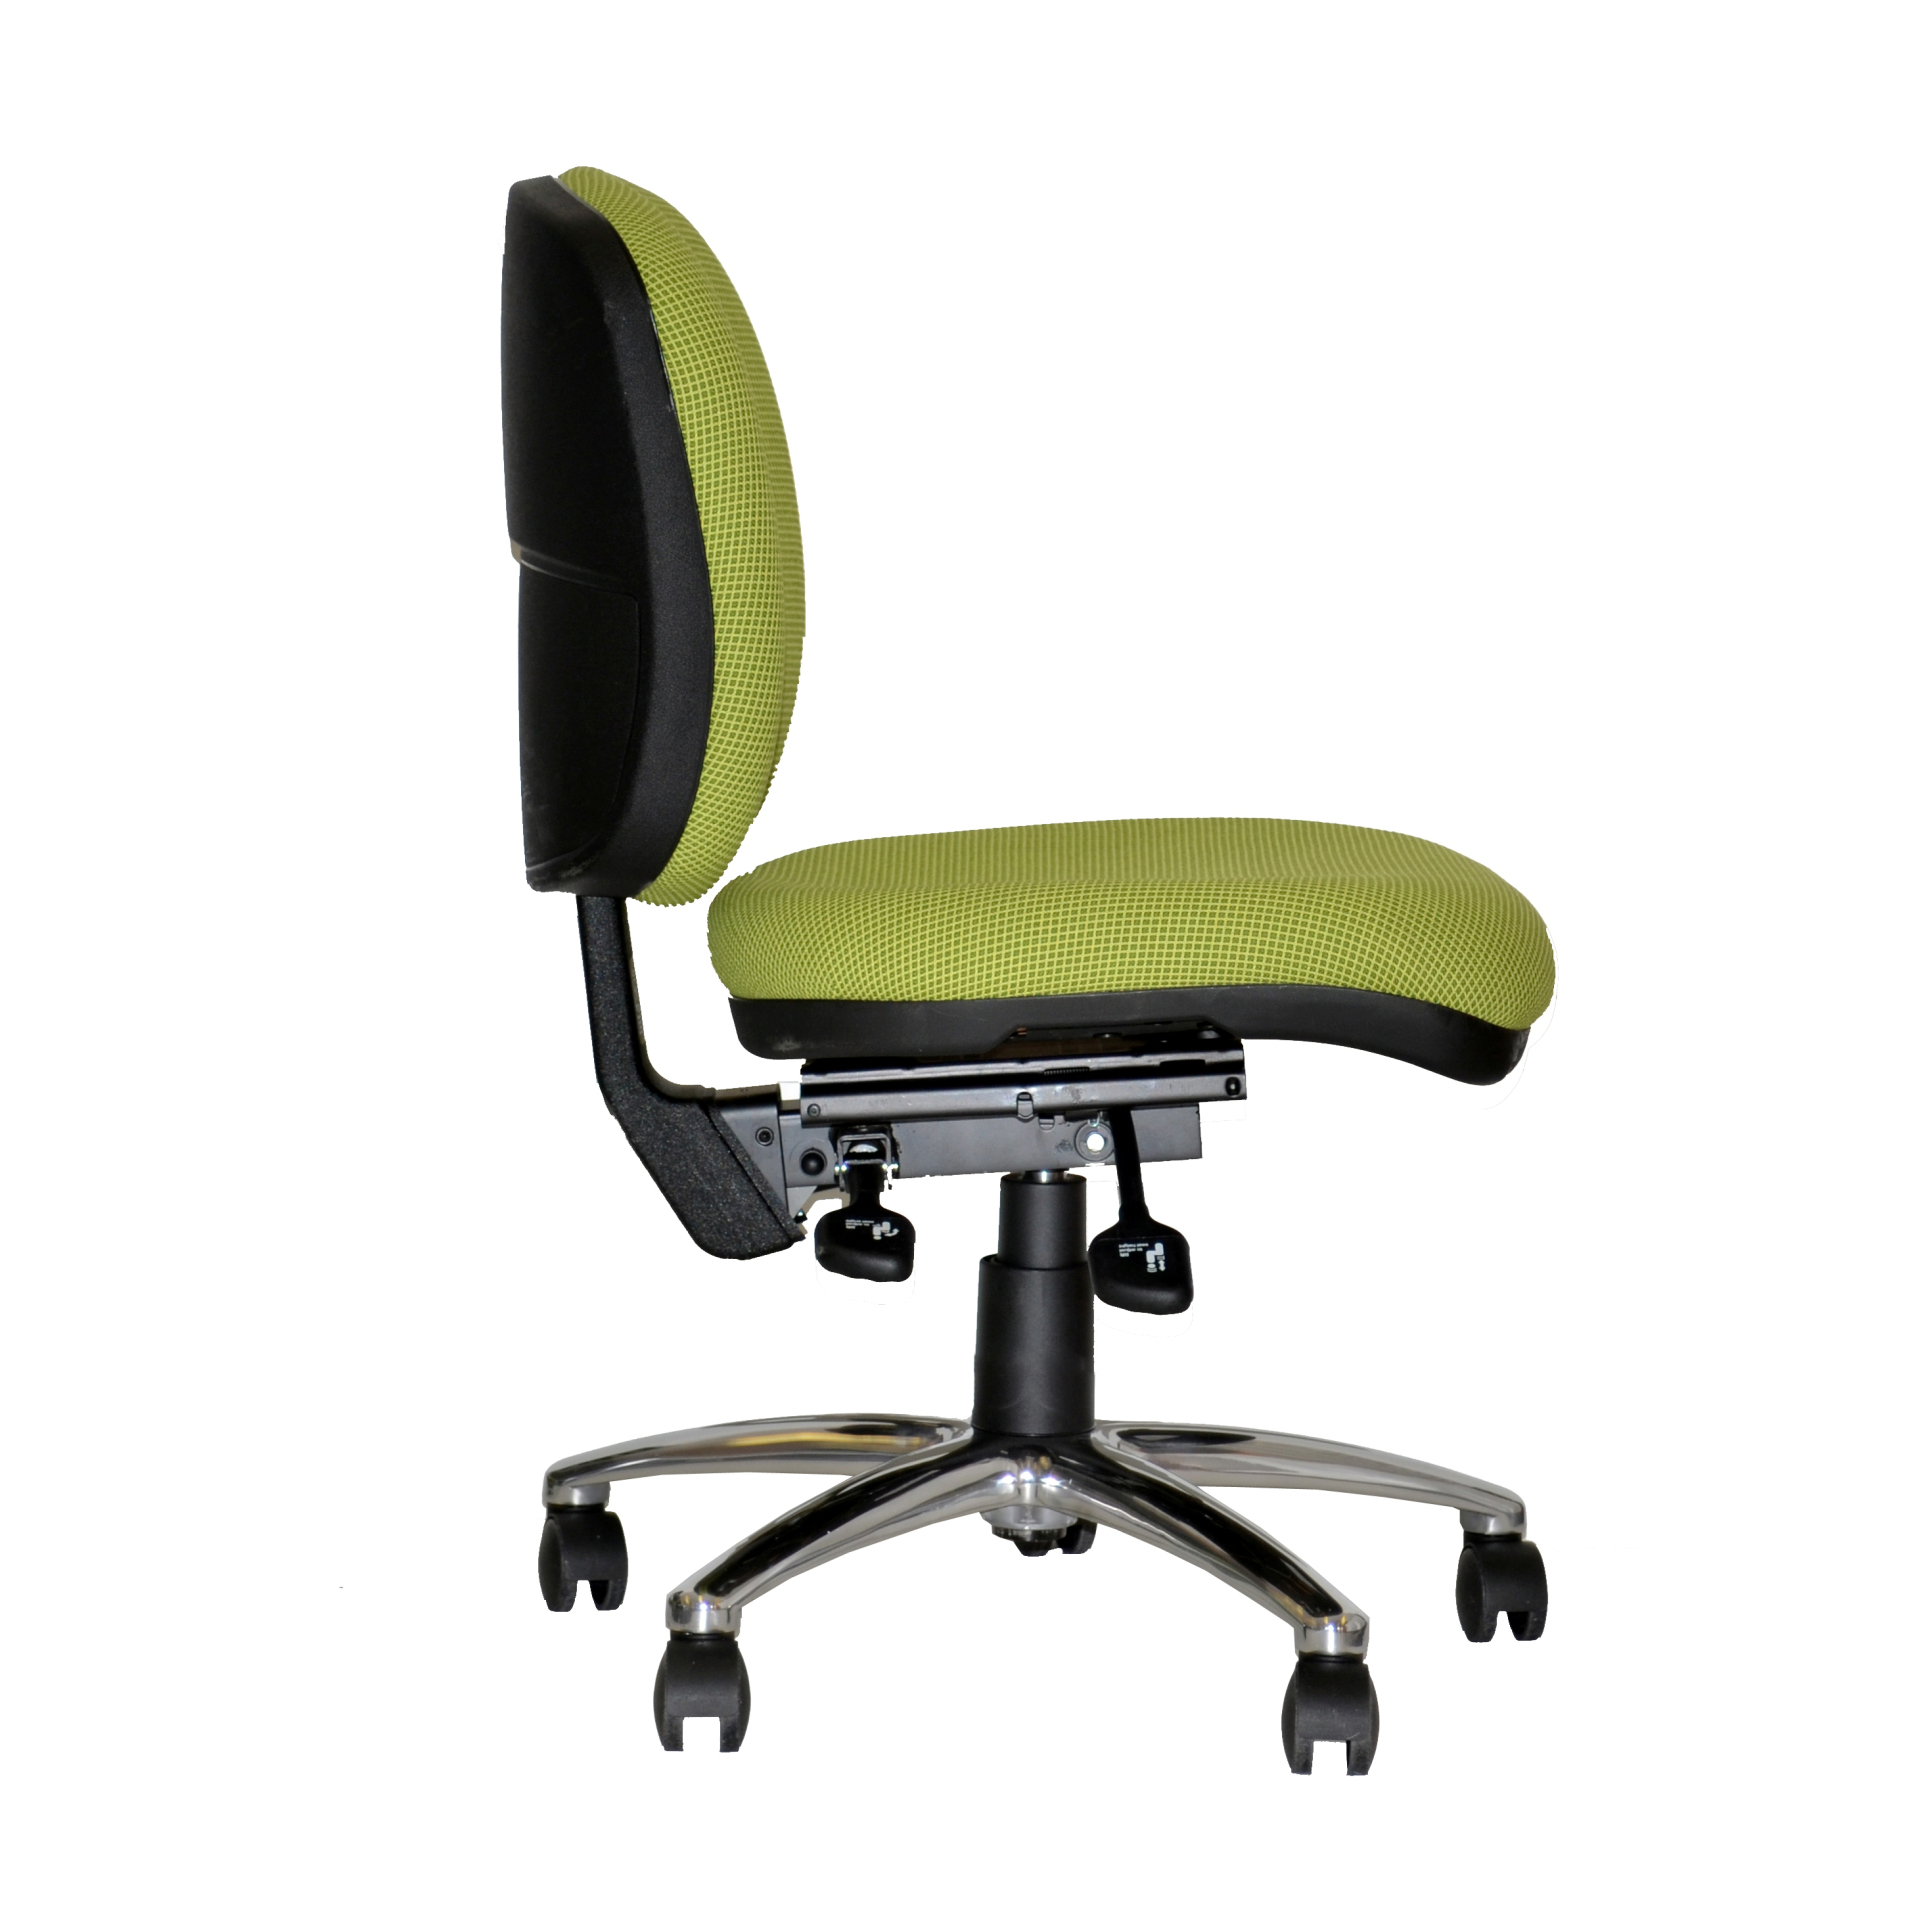 Direct Ergonomics | Sydney Office Furniture | Ergonomic Furniture | Ergonomic Seating | Excutive and Task Seating | Meeting Room Chair | Ergonomic Chair | Ezone 510